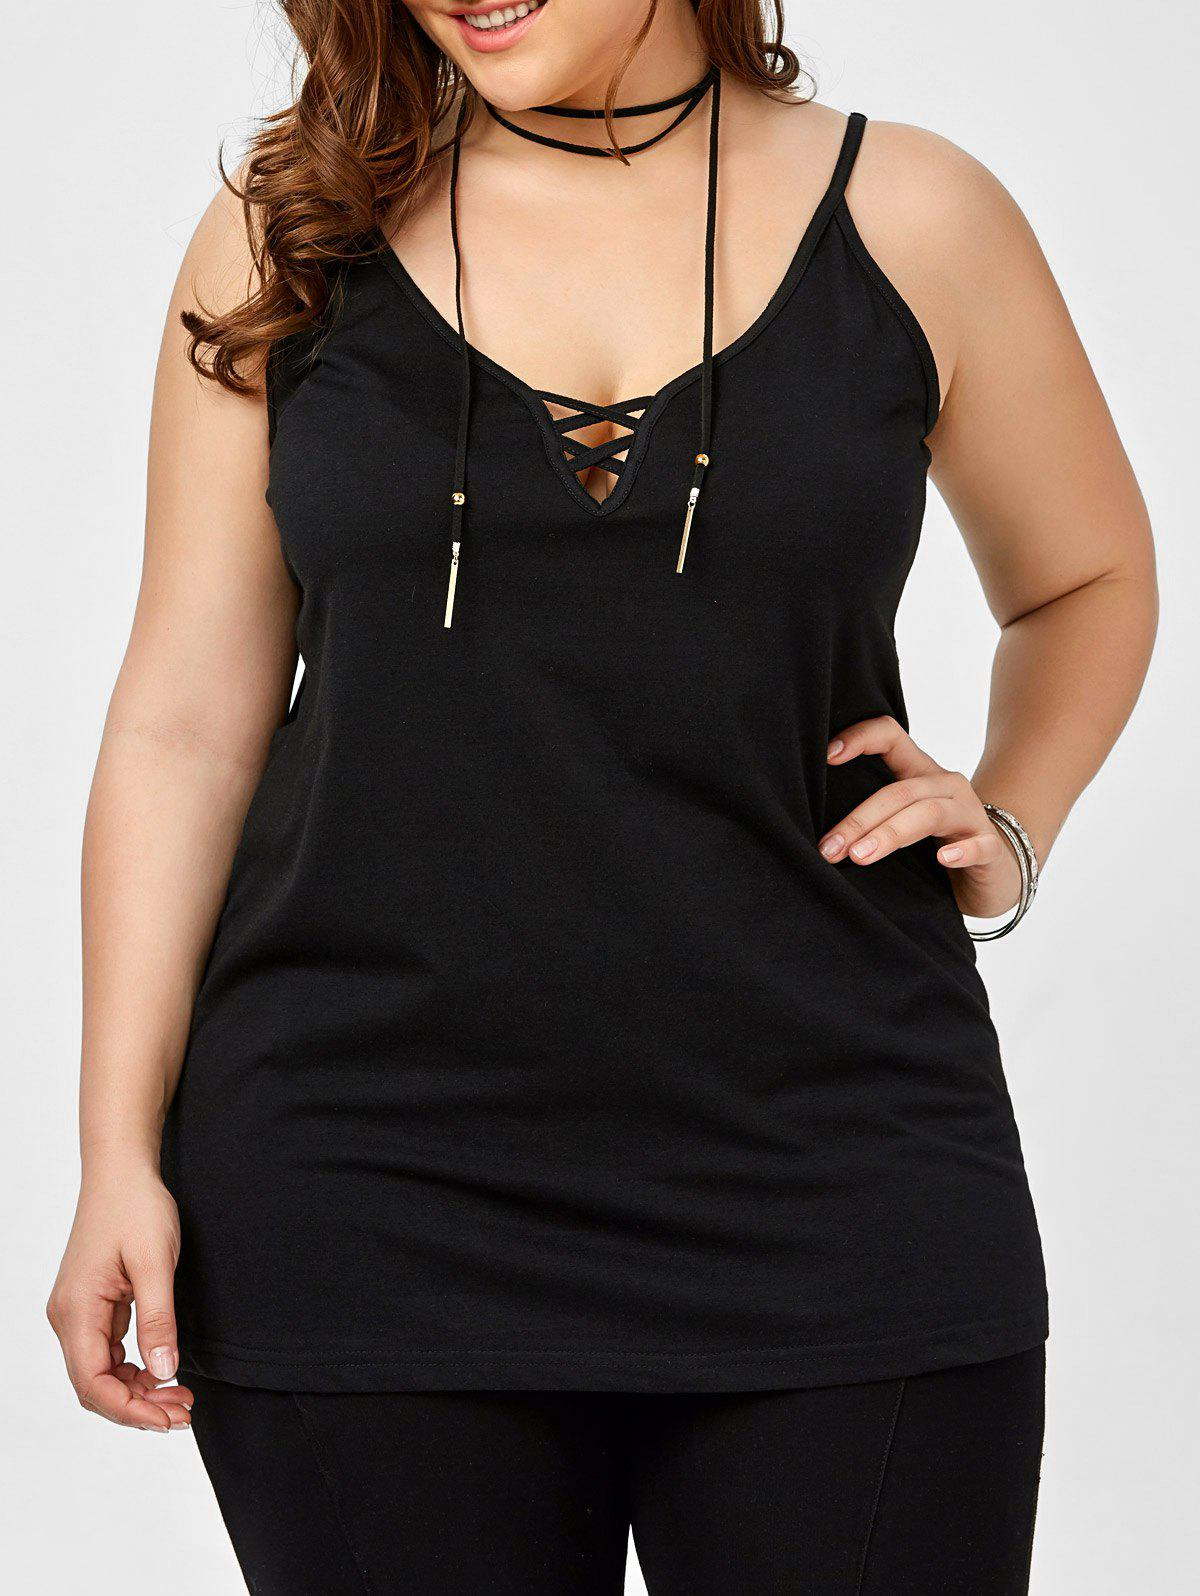 6f97dcbce3c4b 2019 Plus Size Caged Cami Tank Top